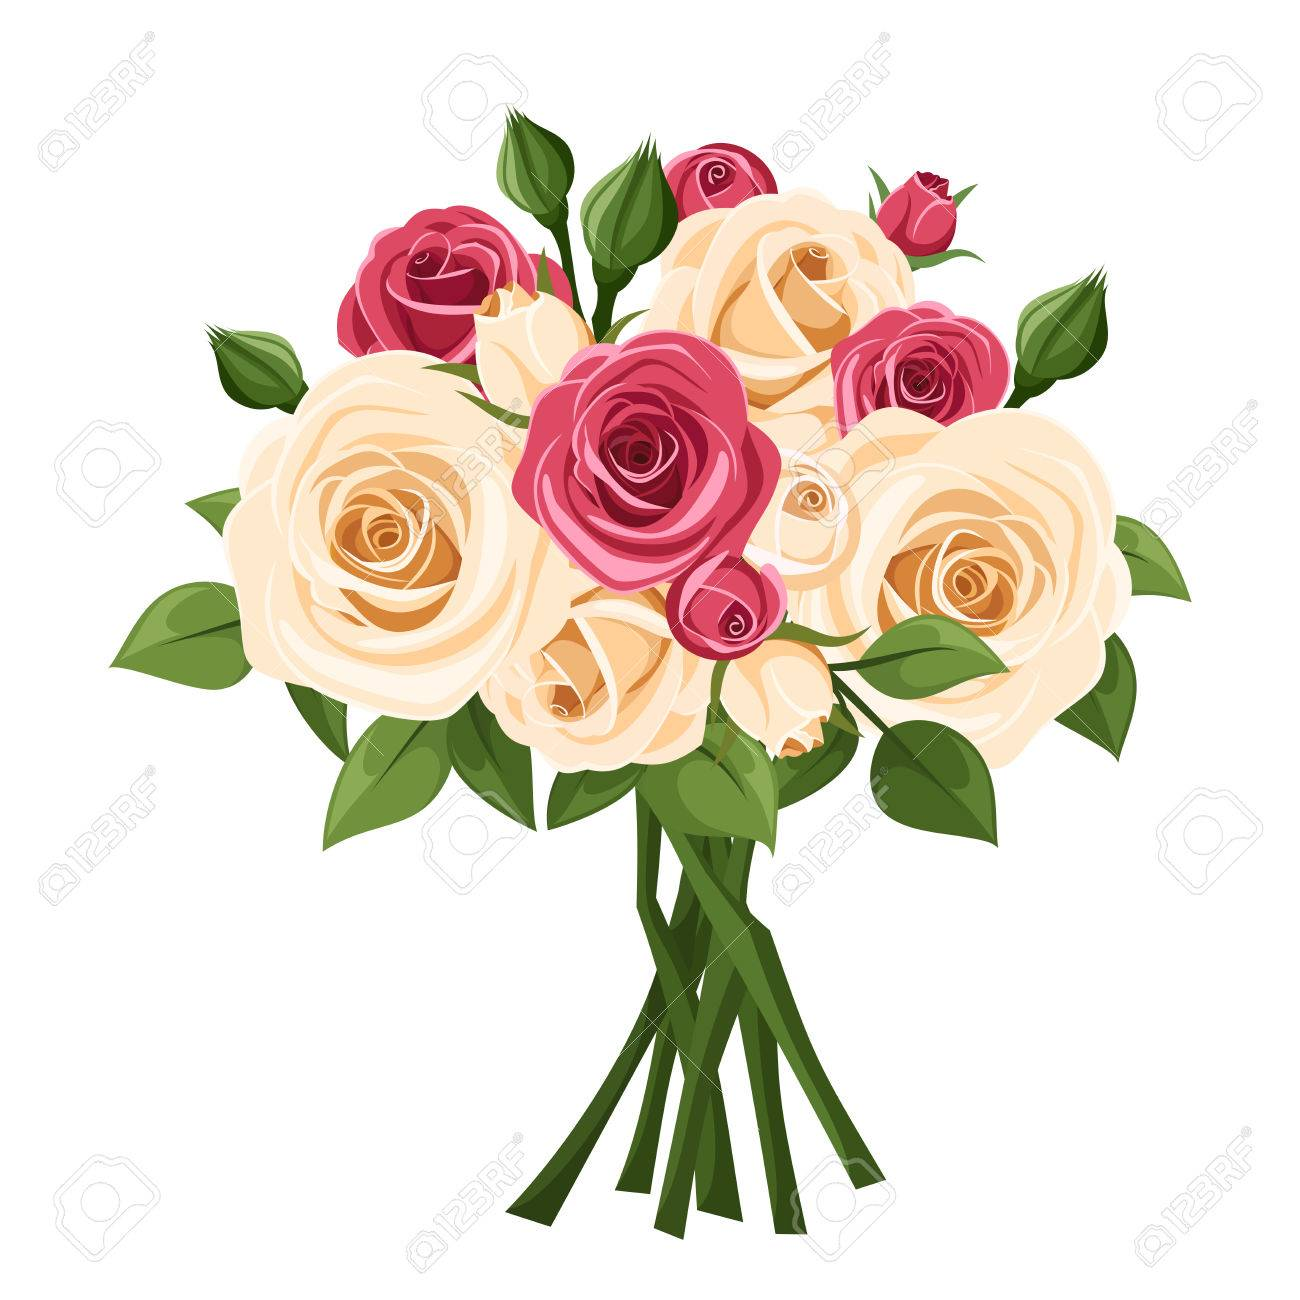 bouquet of red and white roses vector illustration royalty free rh 123rf com rose vector pattern rose vector png